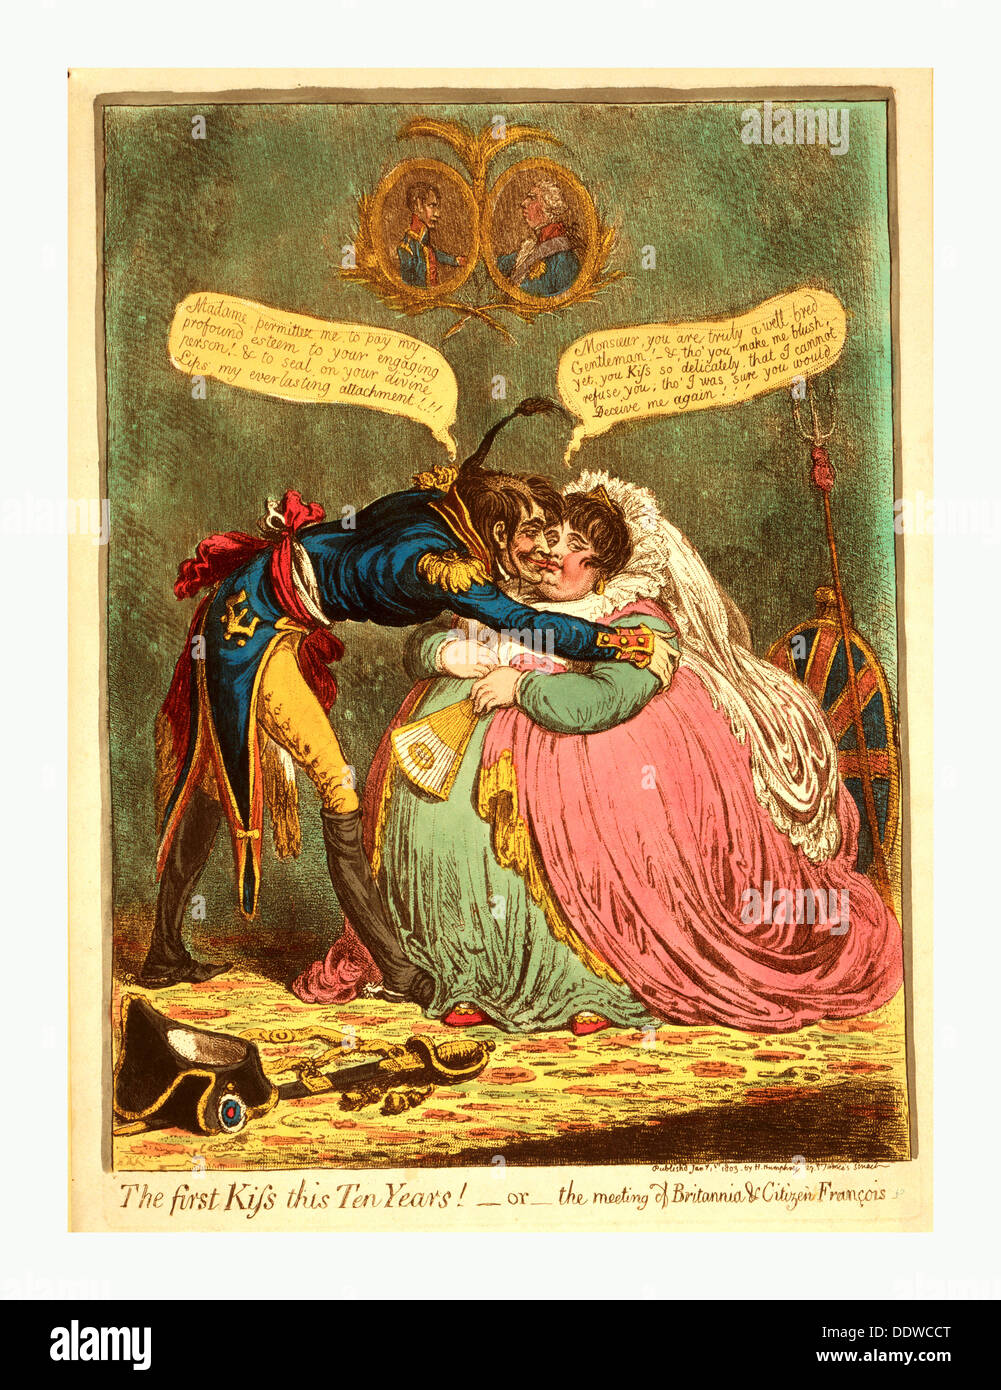 The first Kiss this Ten Years! - or - the meeting of Britannia & Citizen Francois, Gillray, James, 1756 1815, engraver, [London] - Stock Image